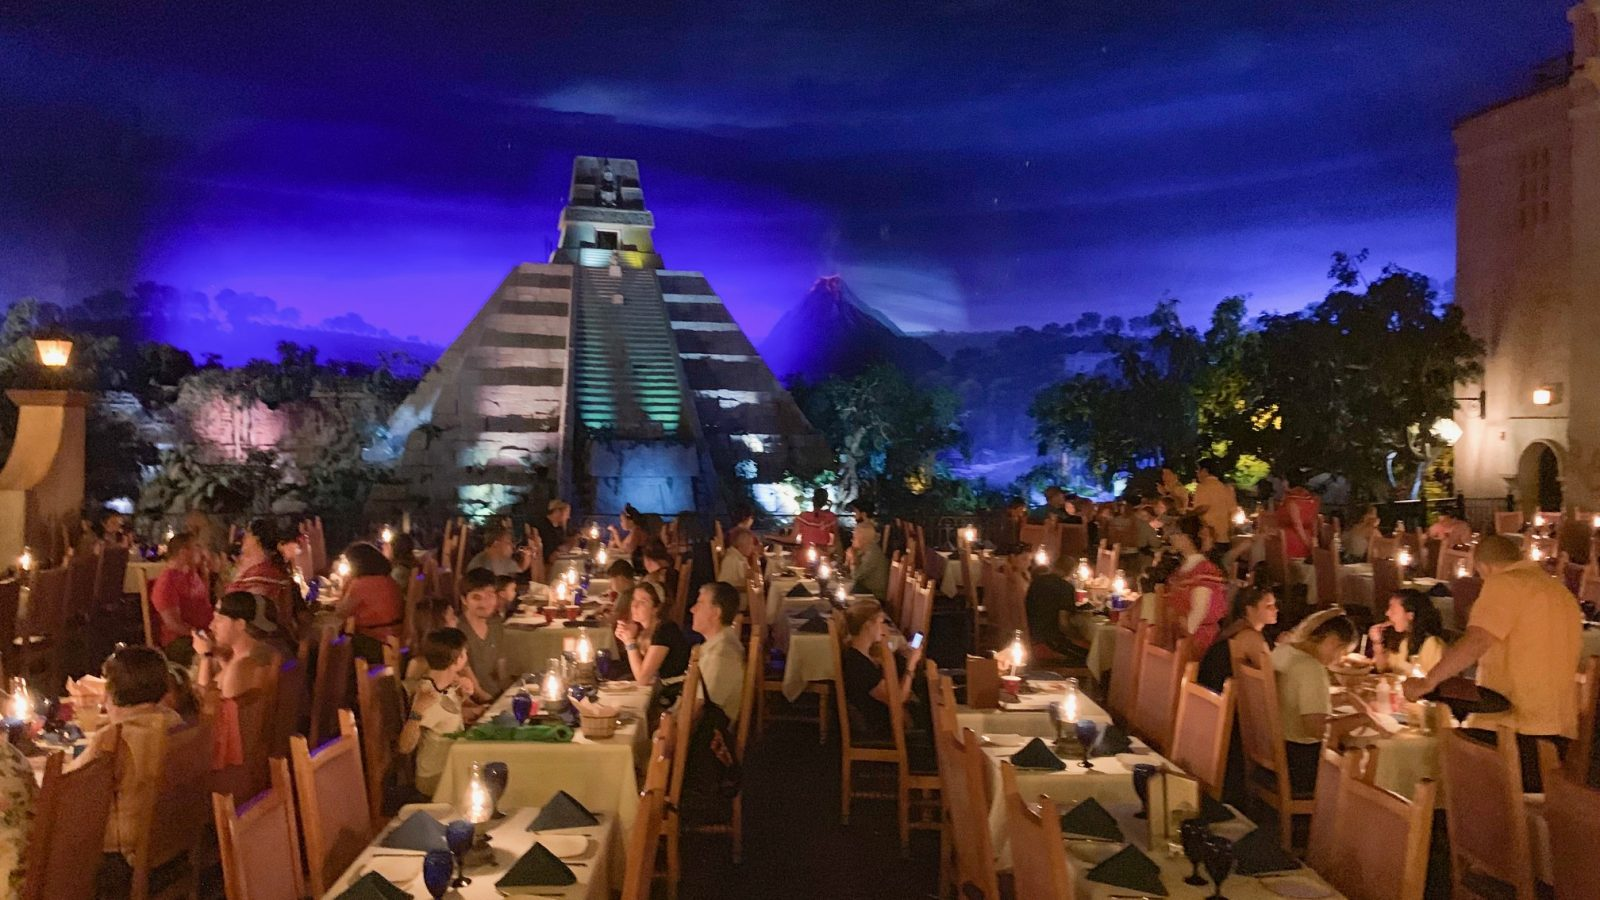 Use your disney dining plan calculator to see if you can eat at Mexico